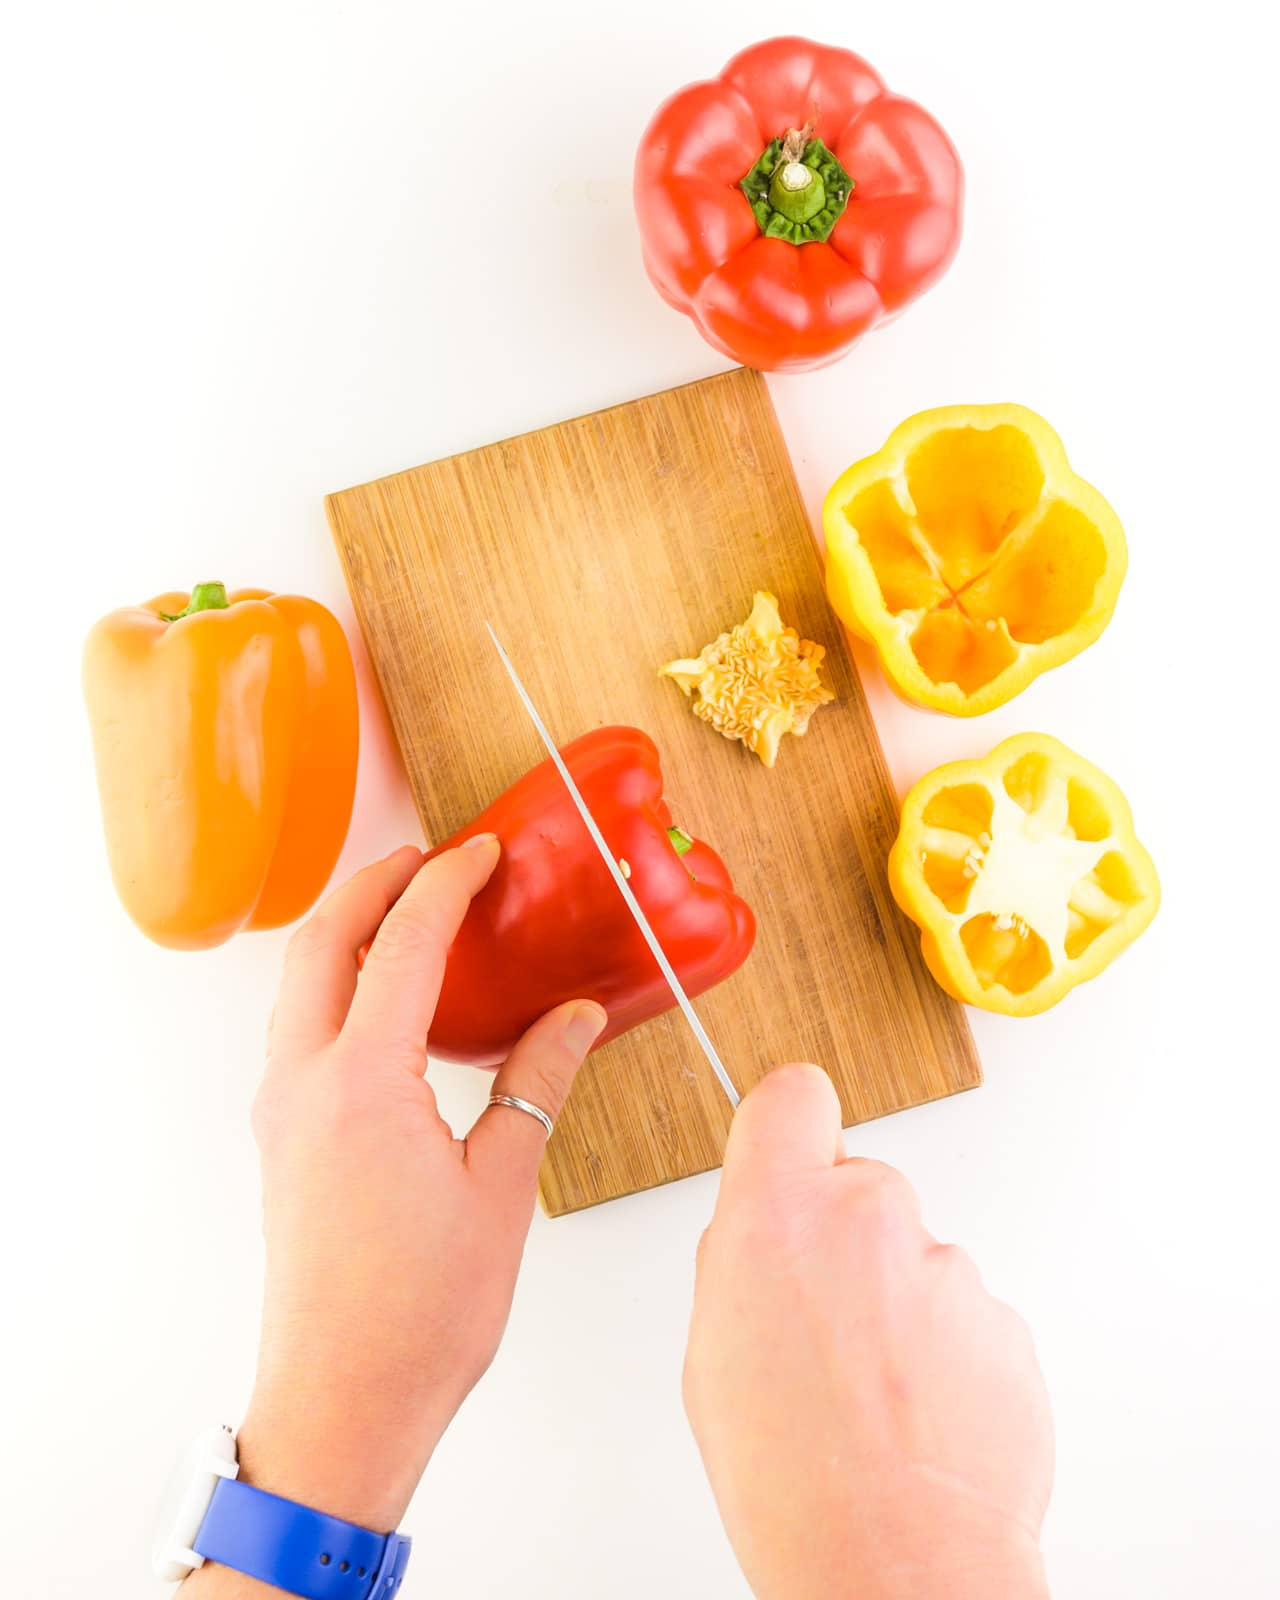 Colorful bell peppers sit on and near a cutting board. A hand holds one pepper while the other hand holds a knife, cutting the top off of it.